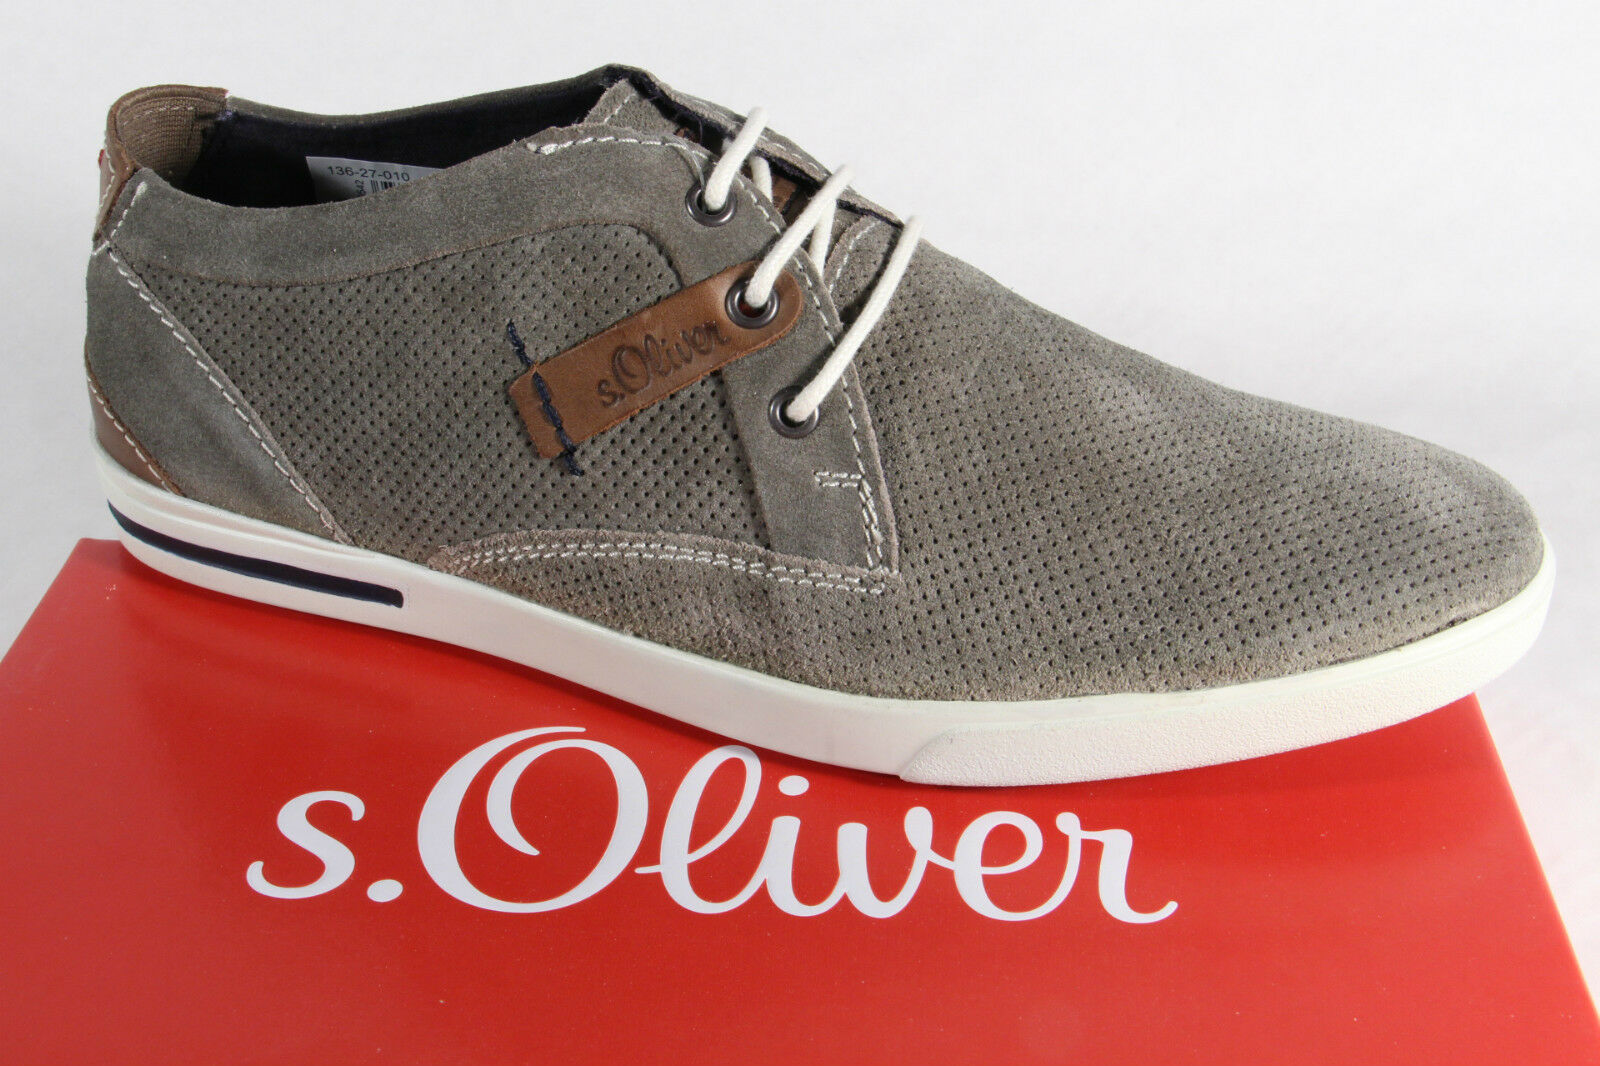 S.Oliver Men's Lace-Up shoes Sneaker Grey, Real Leather,Rubber Sole, NEW